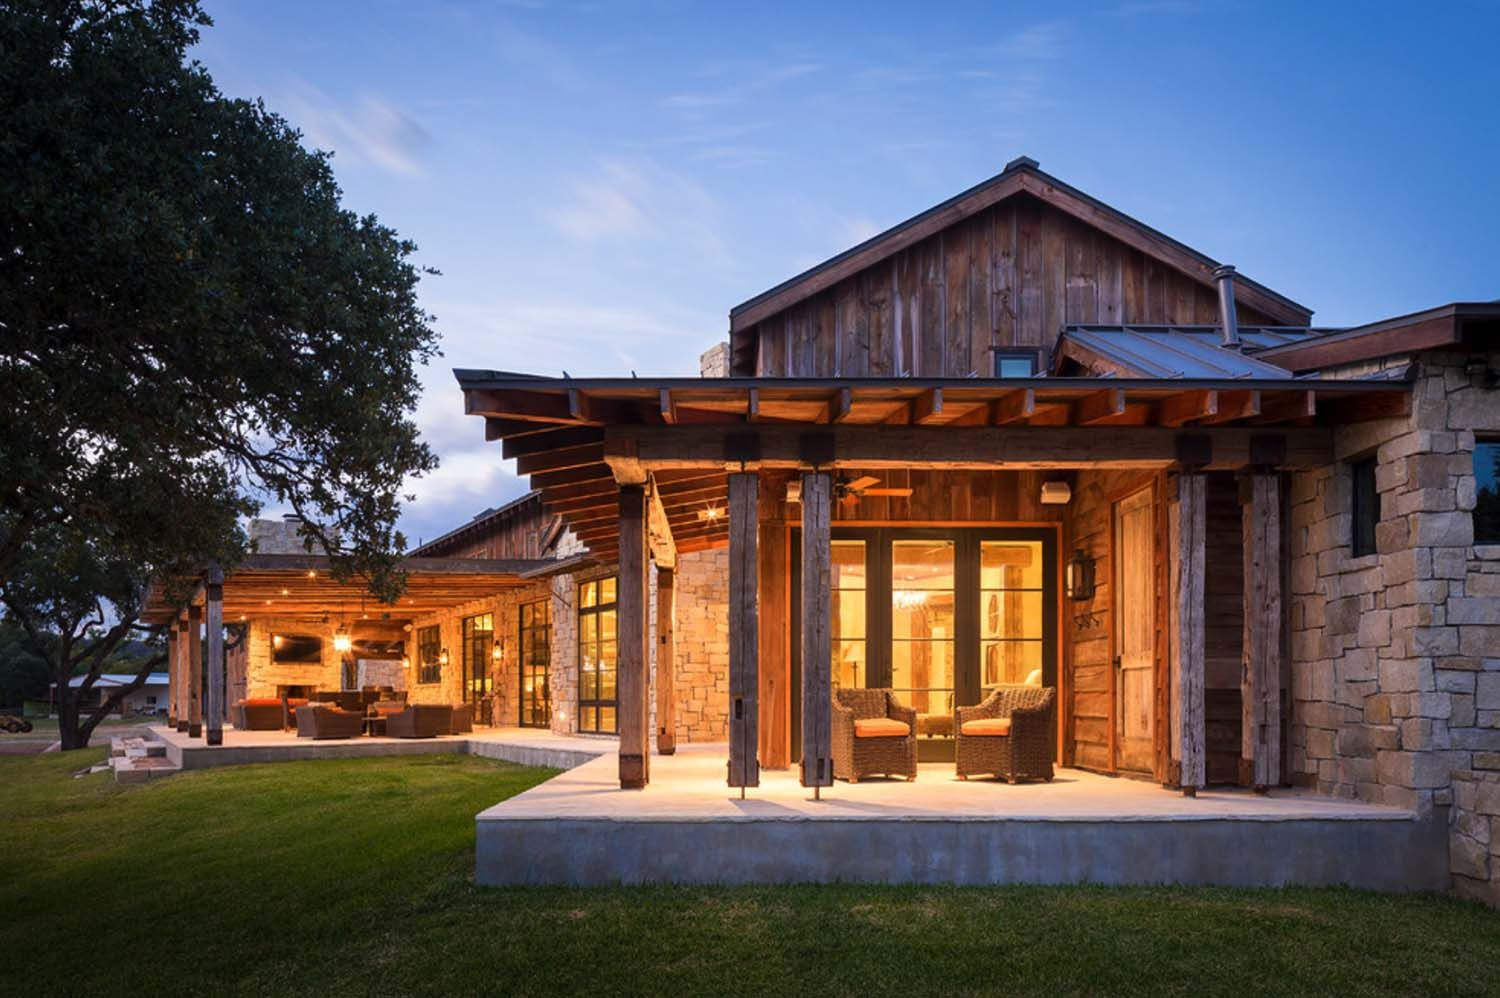 Modern rustic barn style retreat in texas hill country Modern rustic house plans